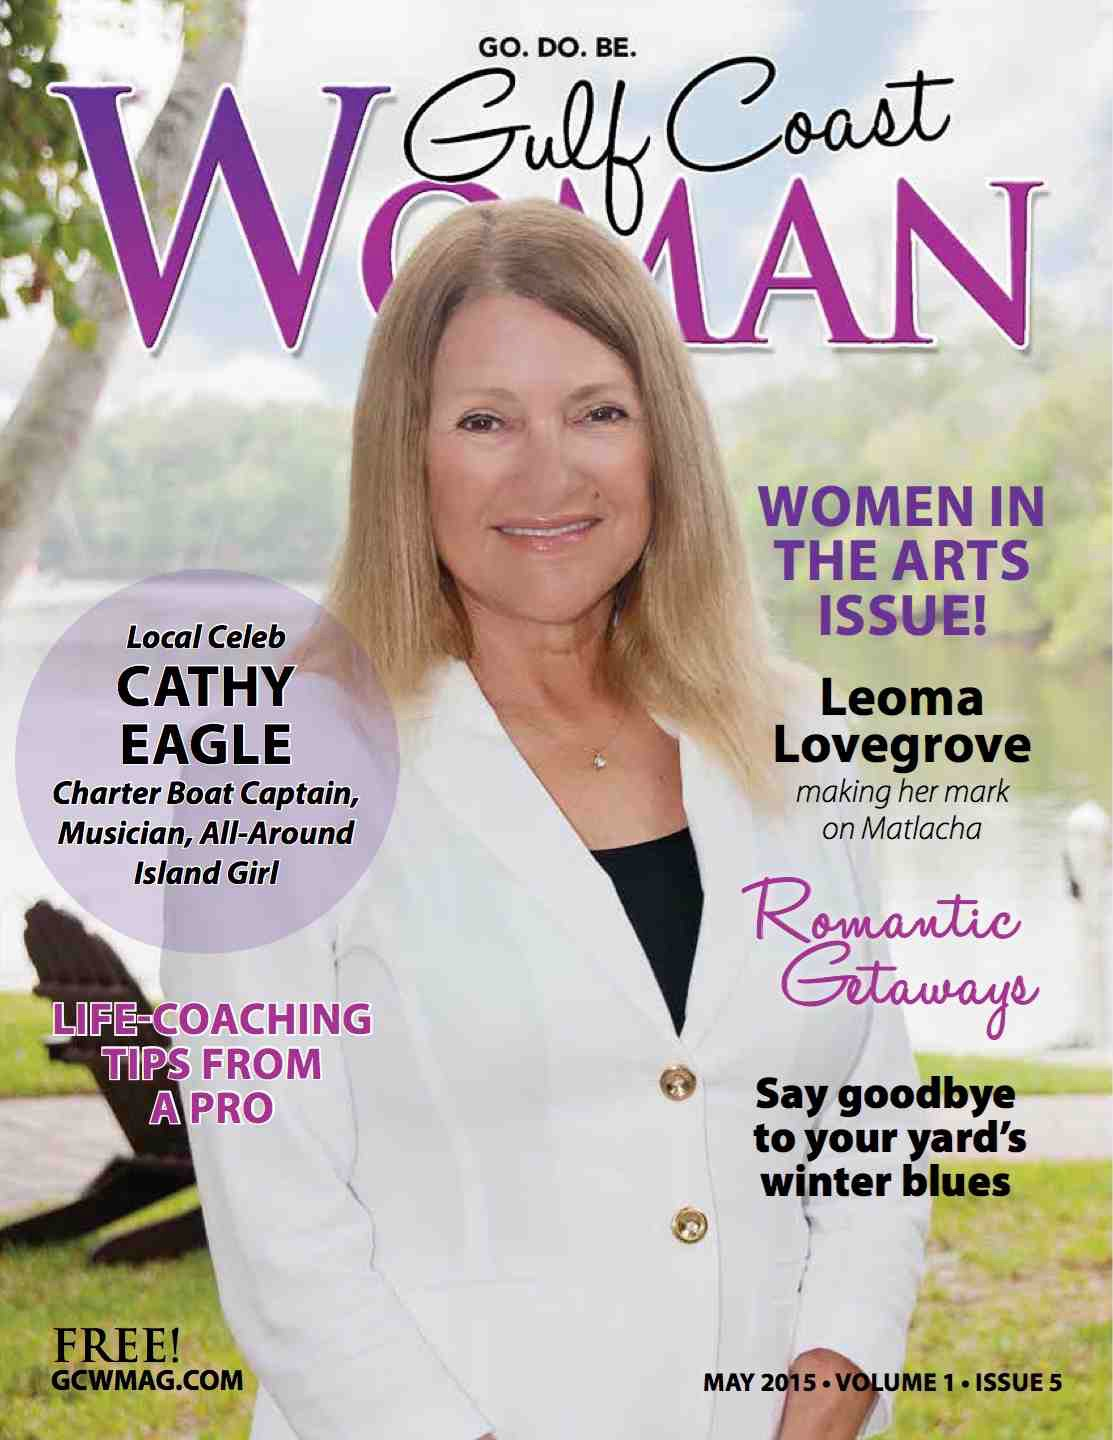 Gulf Coast Woman magazine features Captain Cathy Eagle (image)